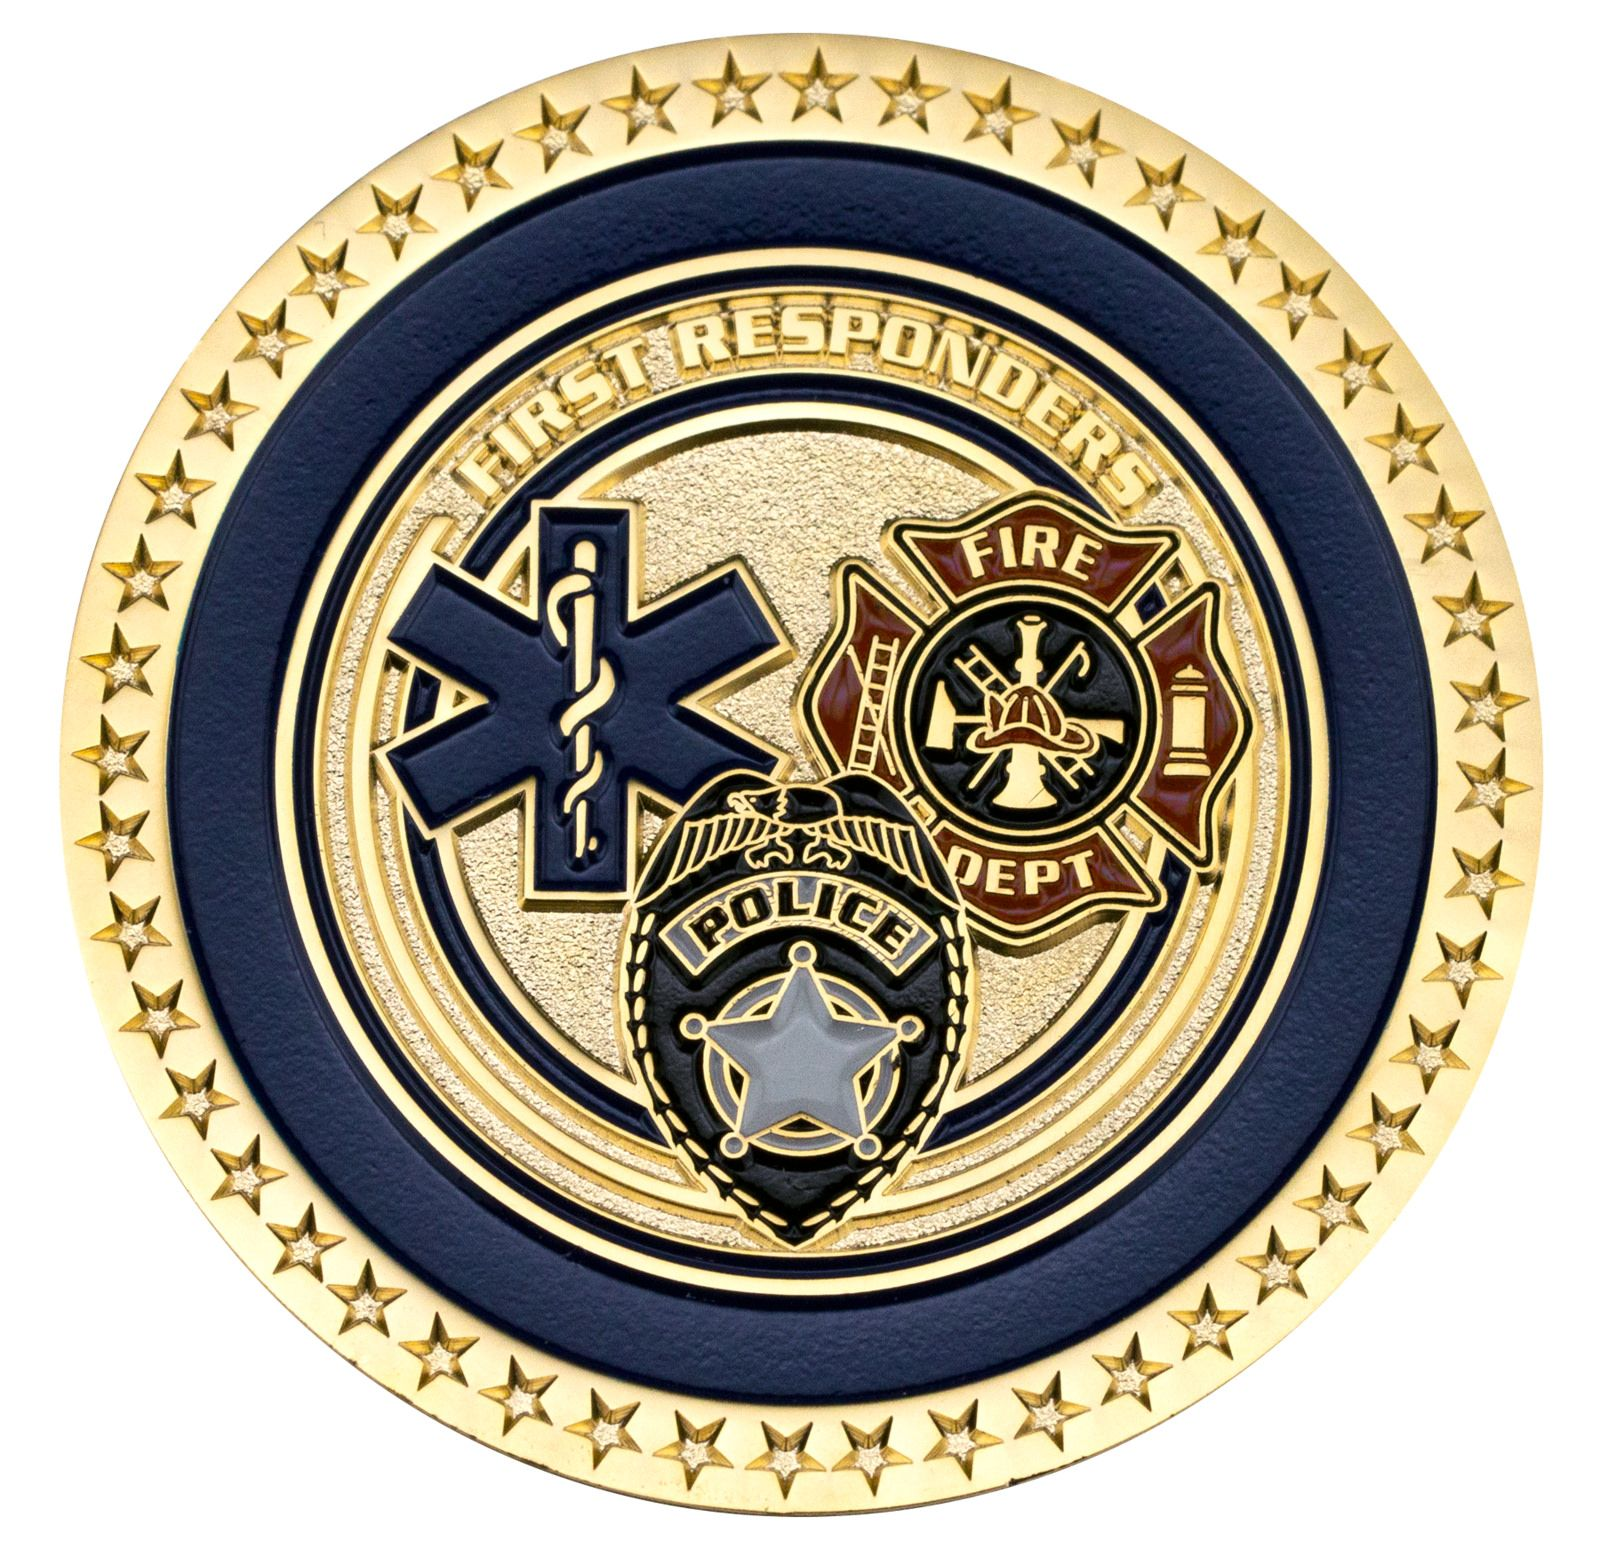 Custom Company Challenge Coin in 2020 Challenge coins